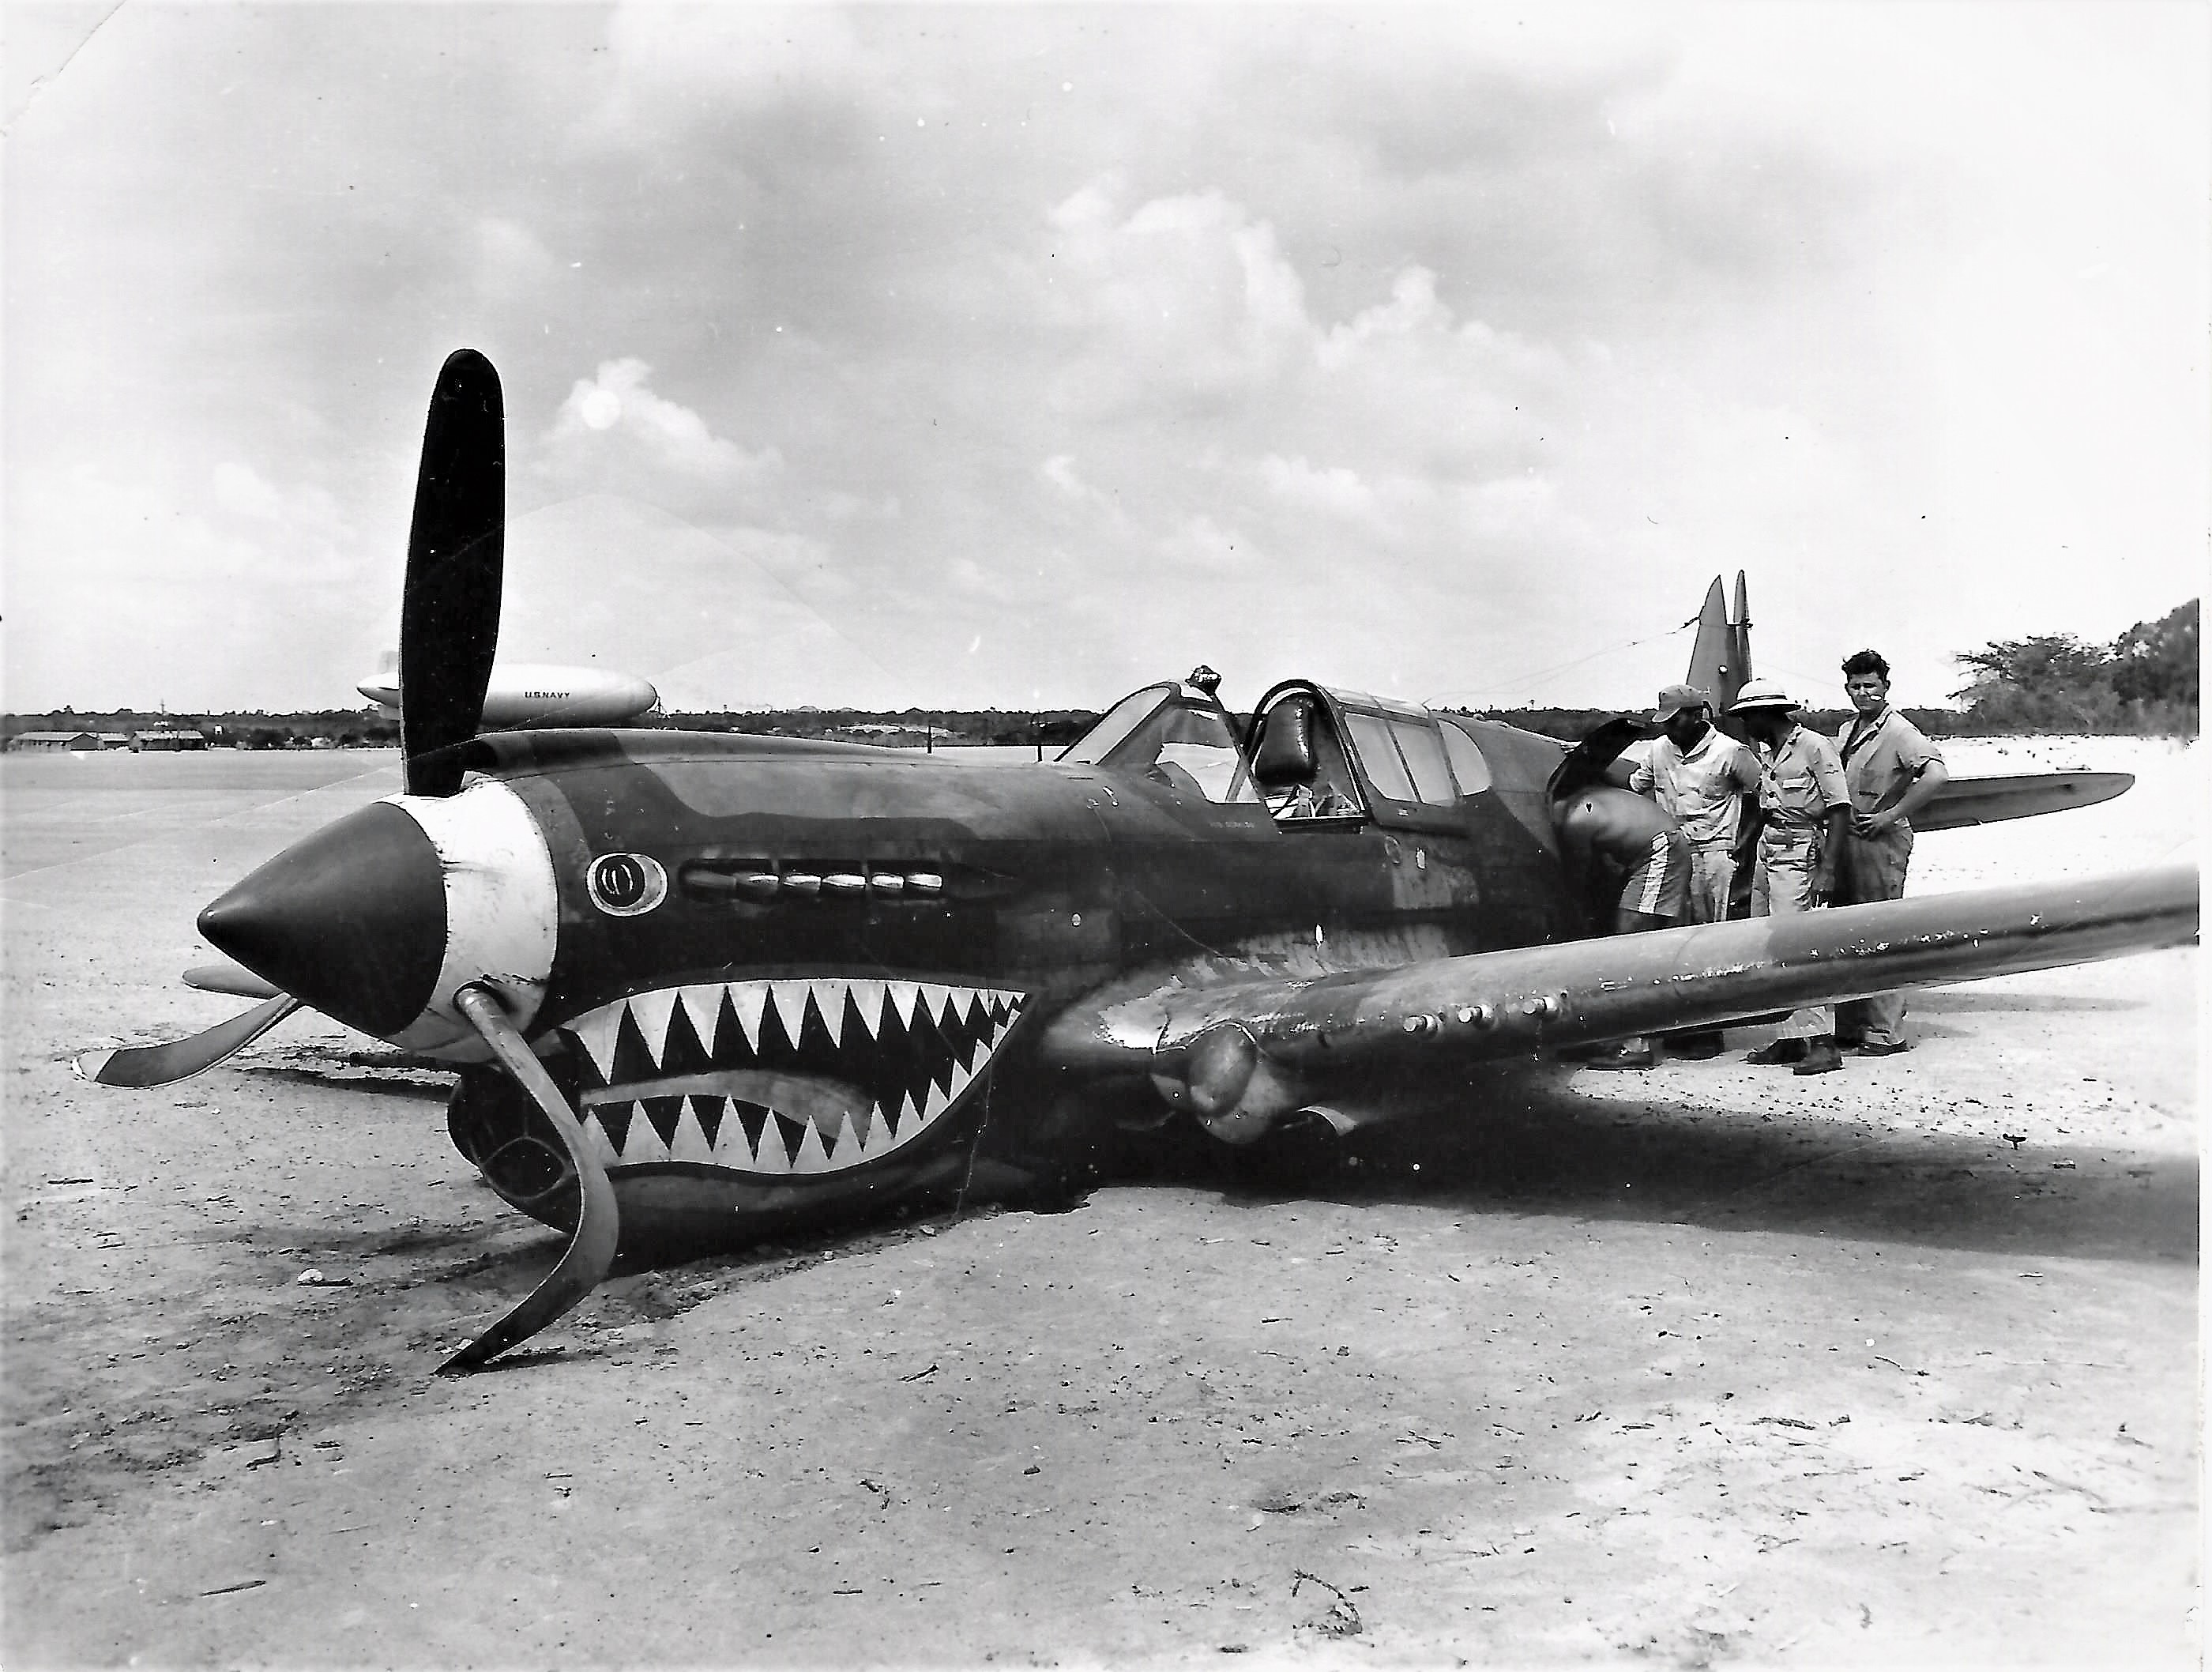 fortaleza-crash-landed-brazilian-af-curtiss-p-40-warhawk-fighter-plane-copy